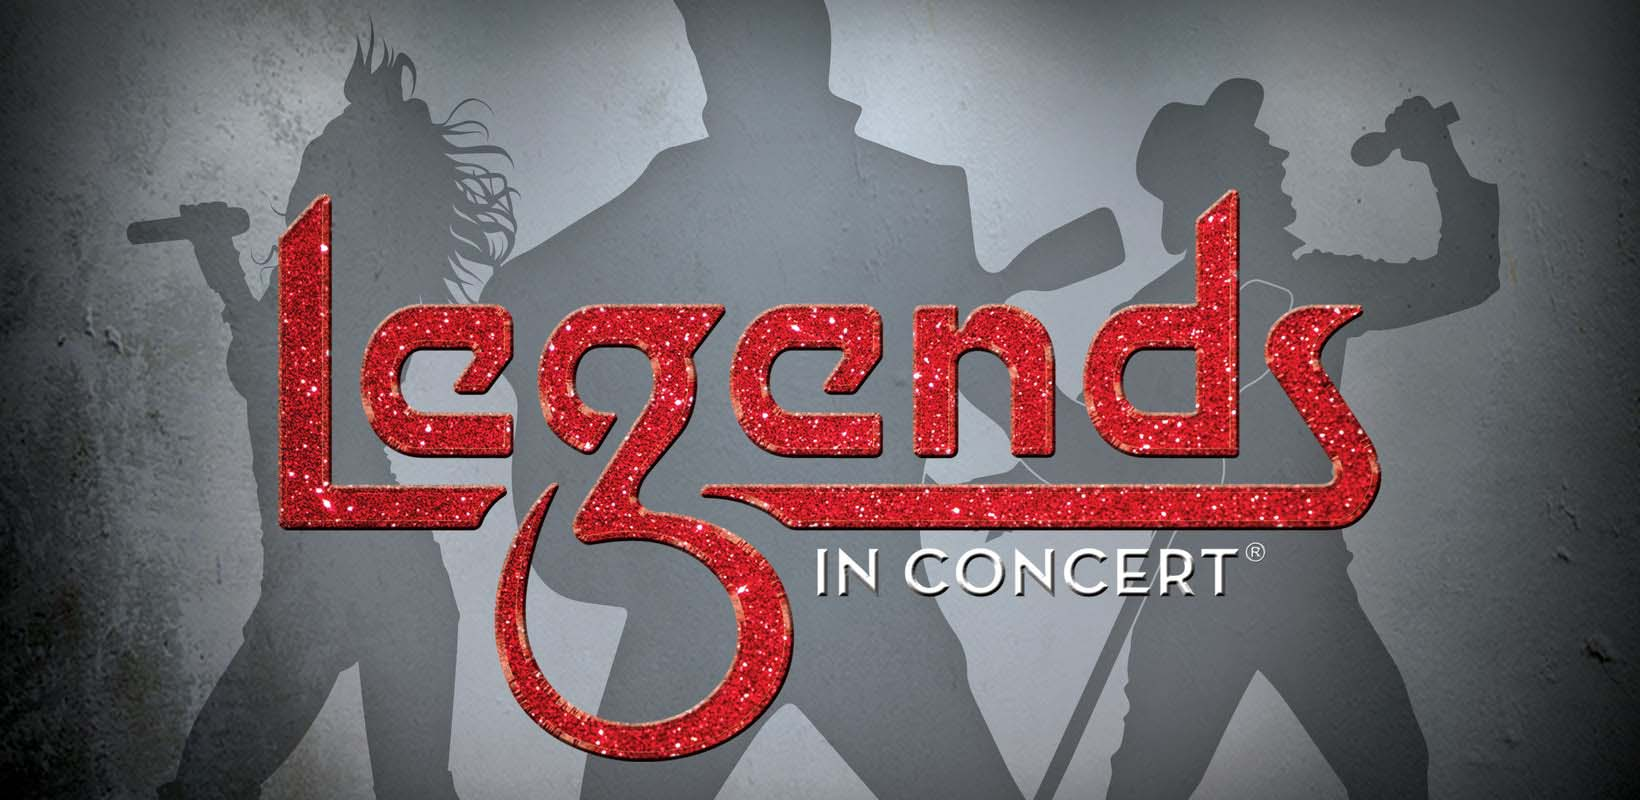 Tickets to Legends In Concert